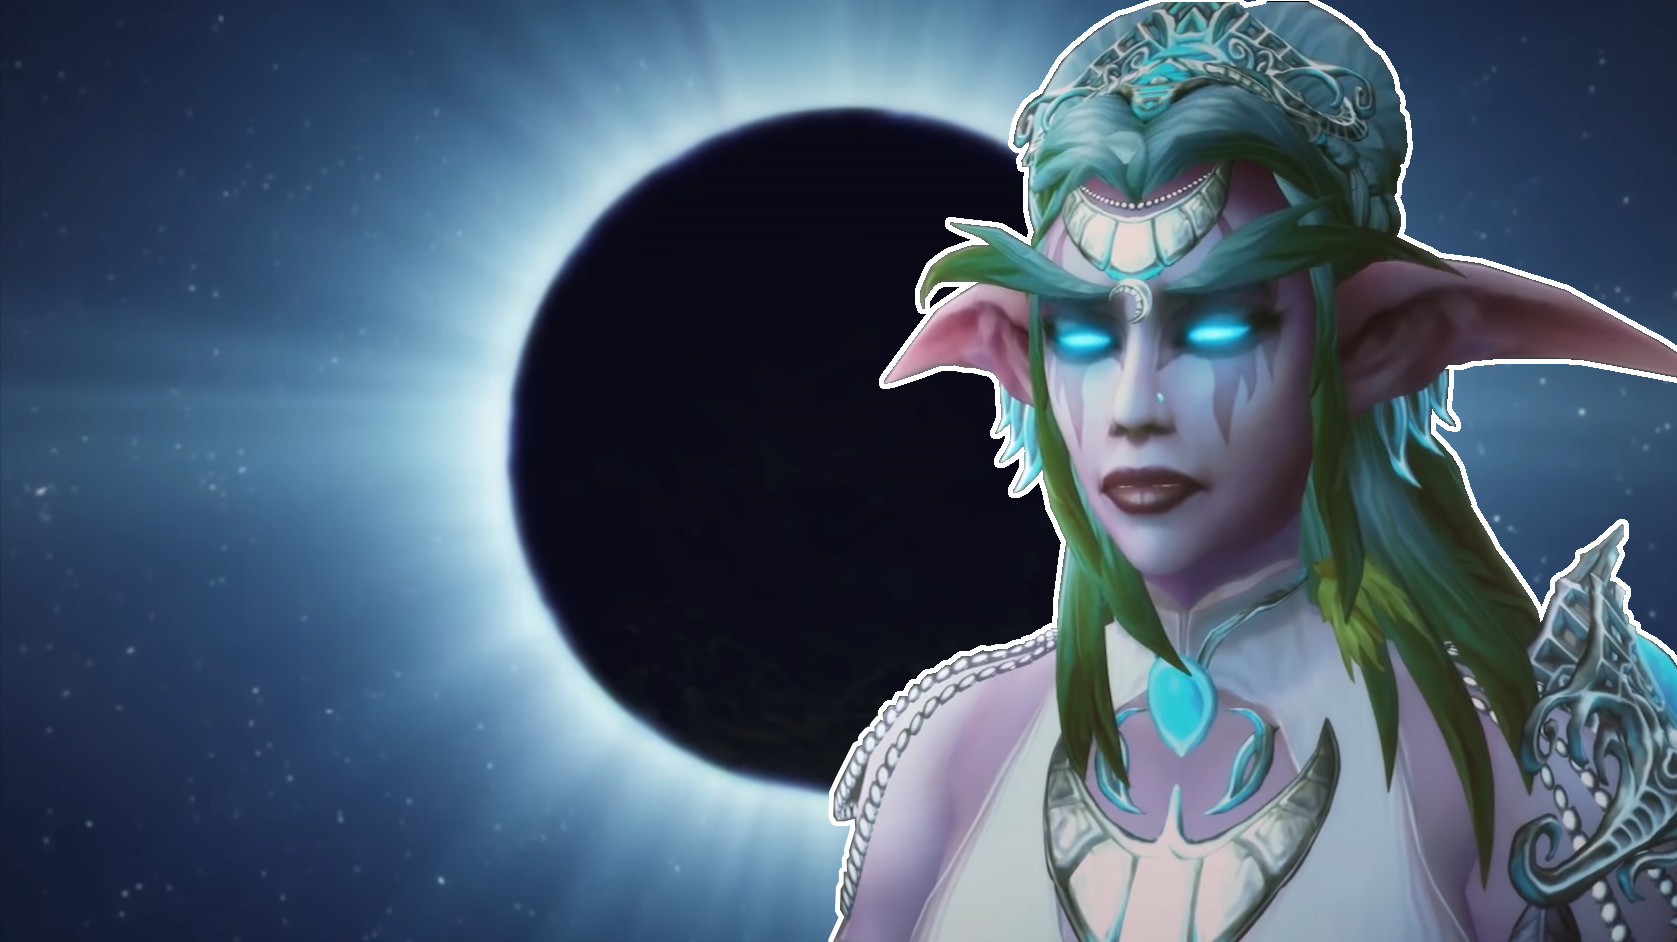 WoW Elune Tyrande Theory title